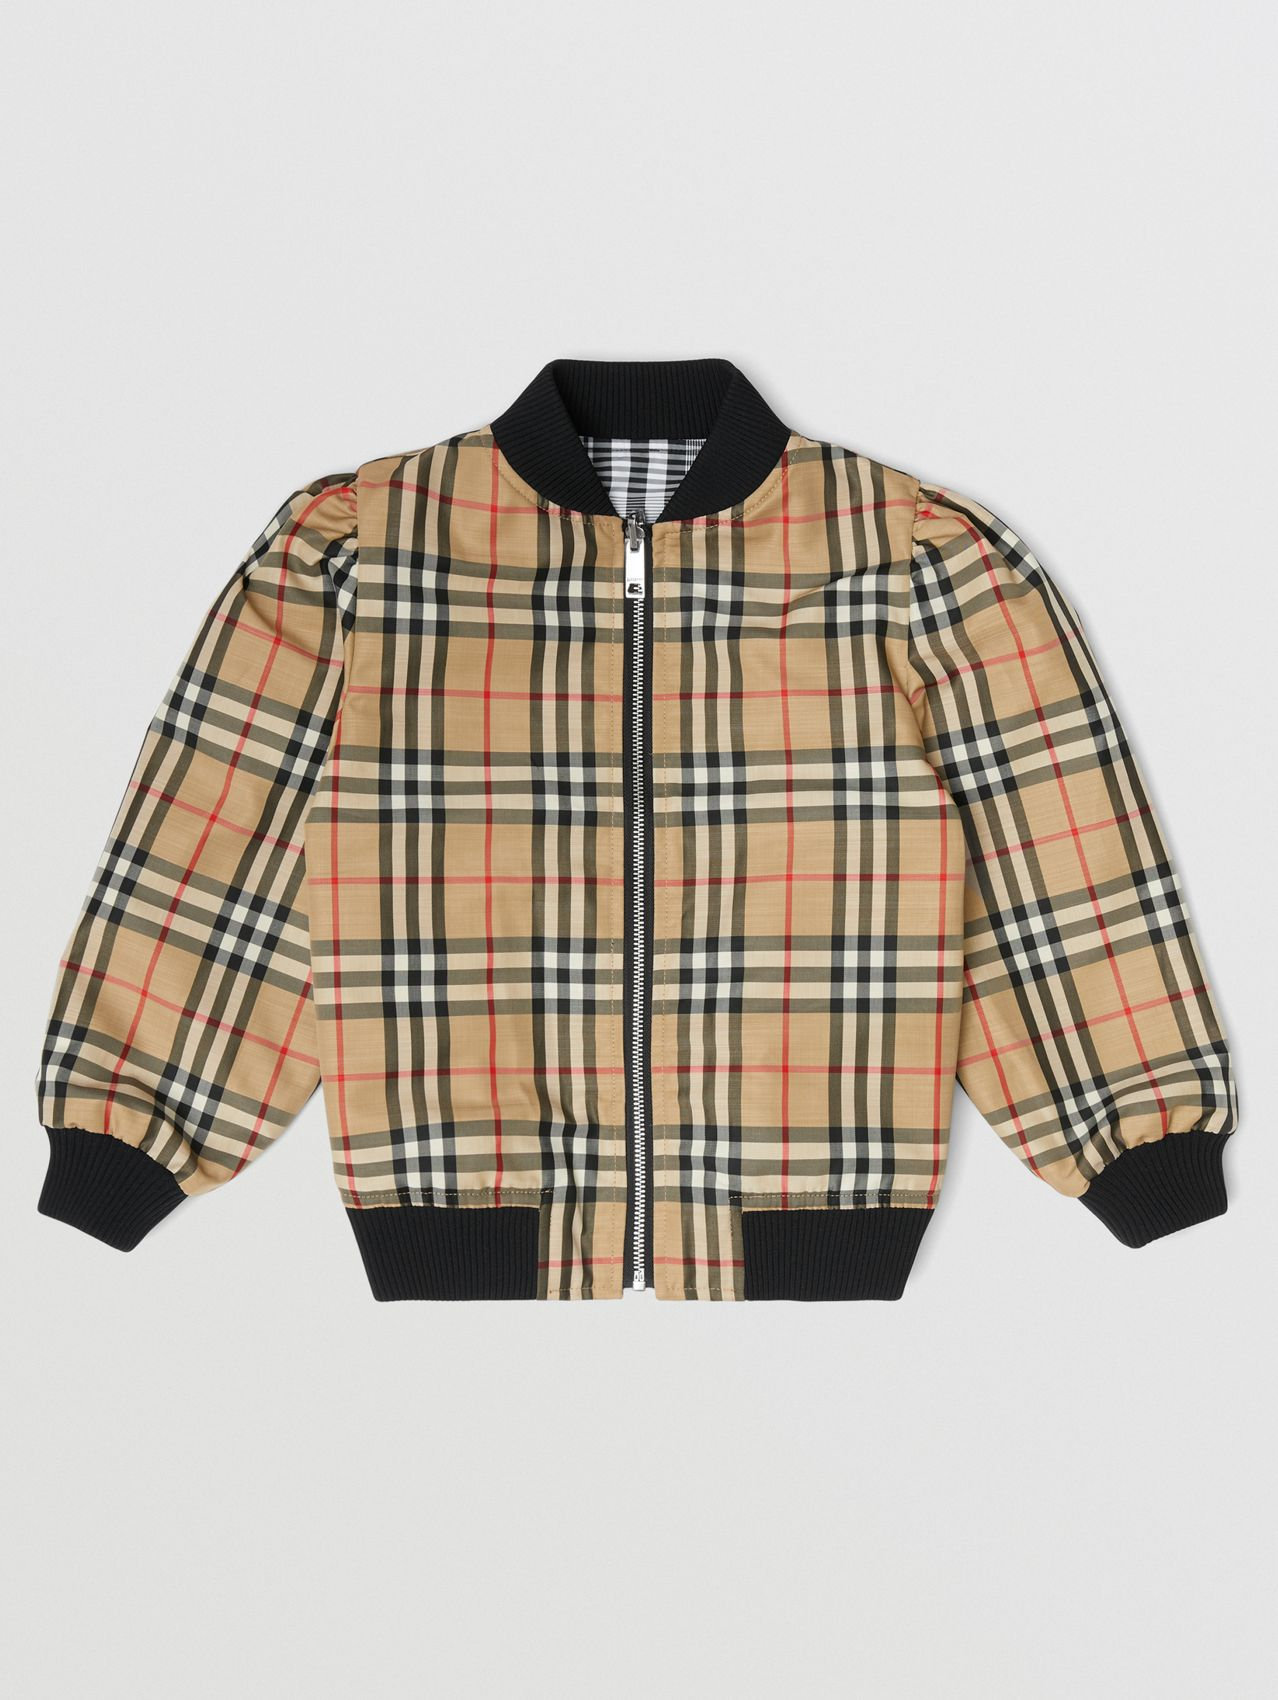 Logo Appliqué Reversible Check Bomber Jacket in Black